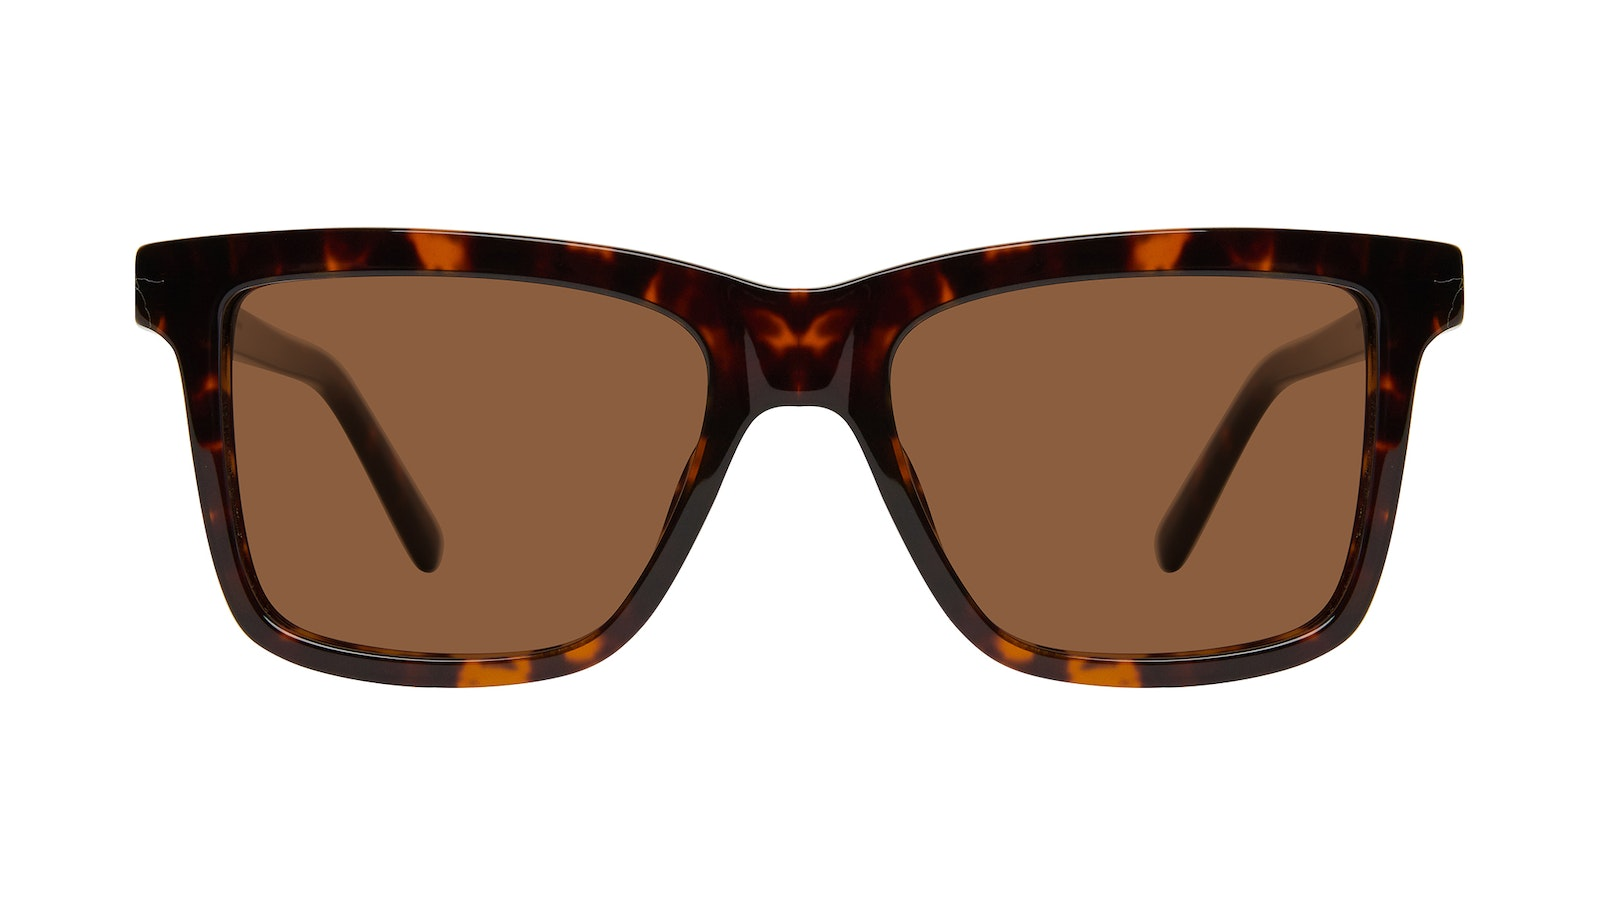 Affordable Fashion Glasses Square Sunglasses Men Elite Brindle